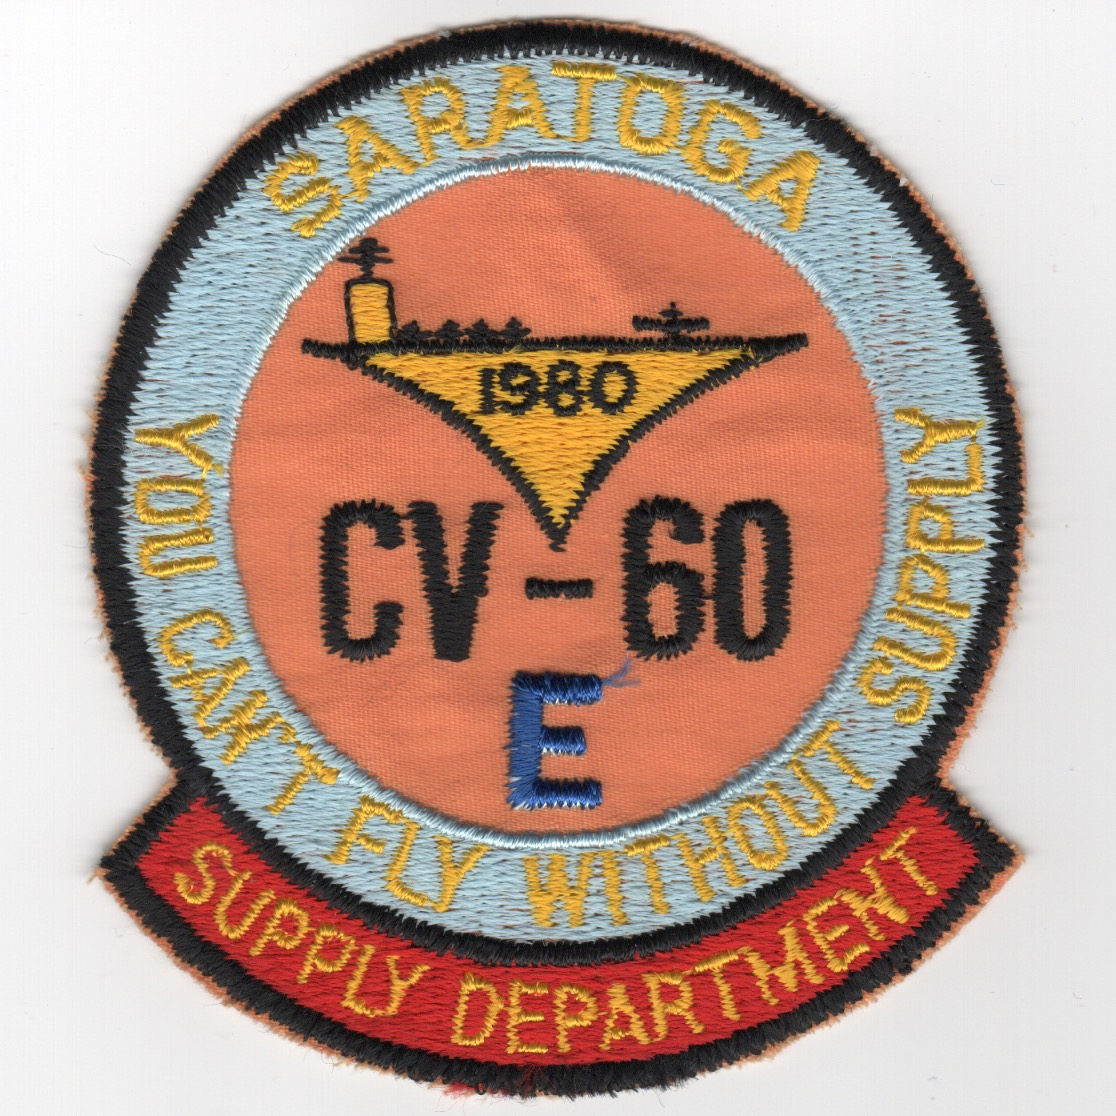 401) CV-60 'SUPPLY Department' (1980)